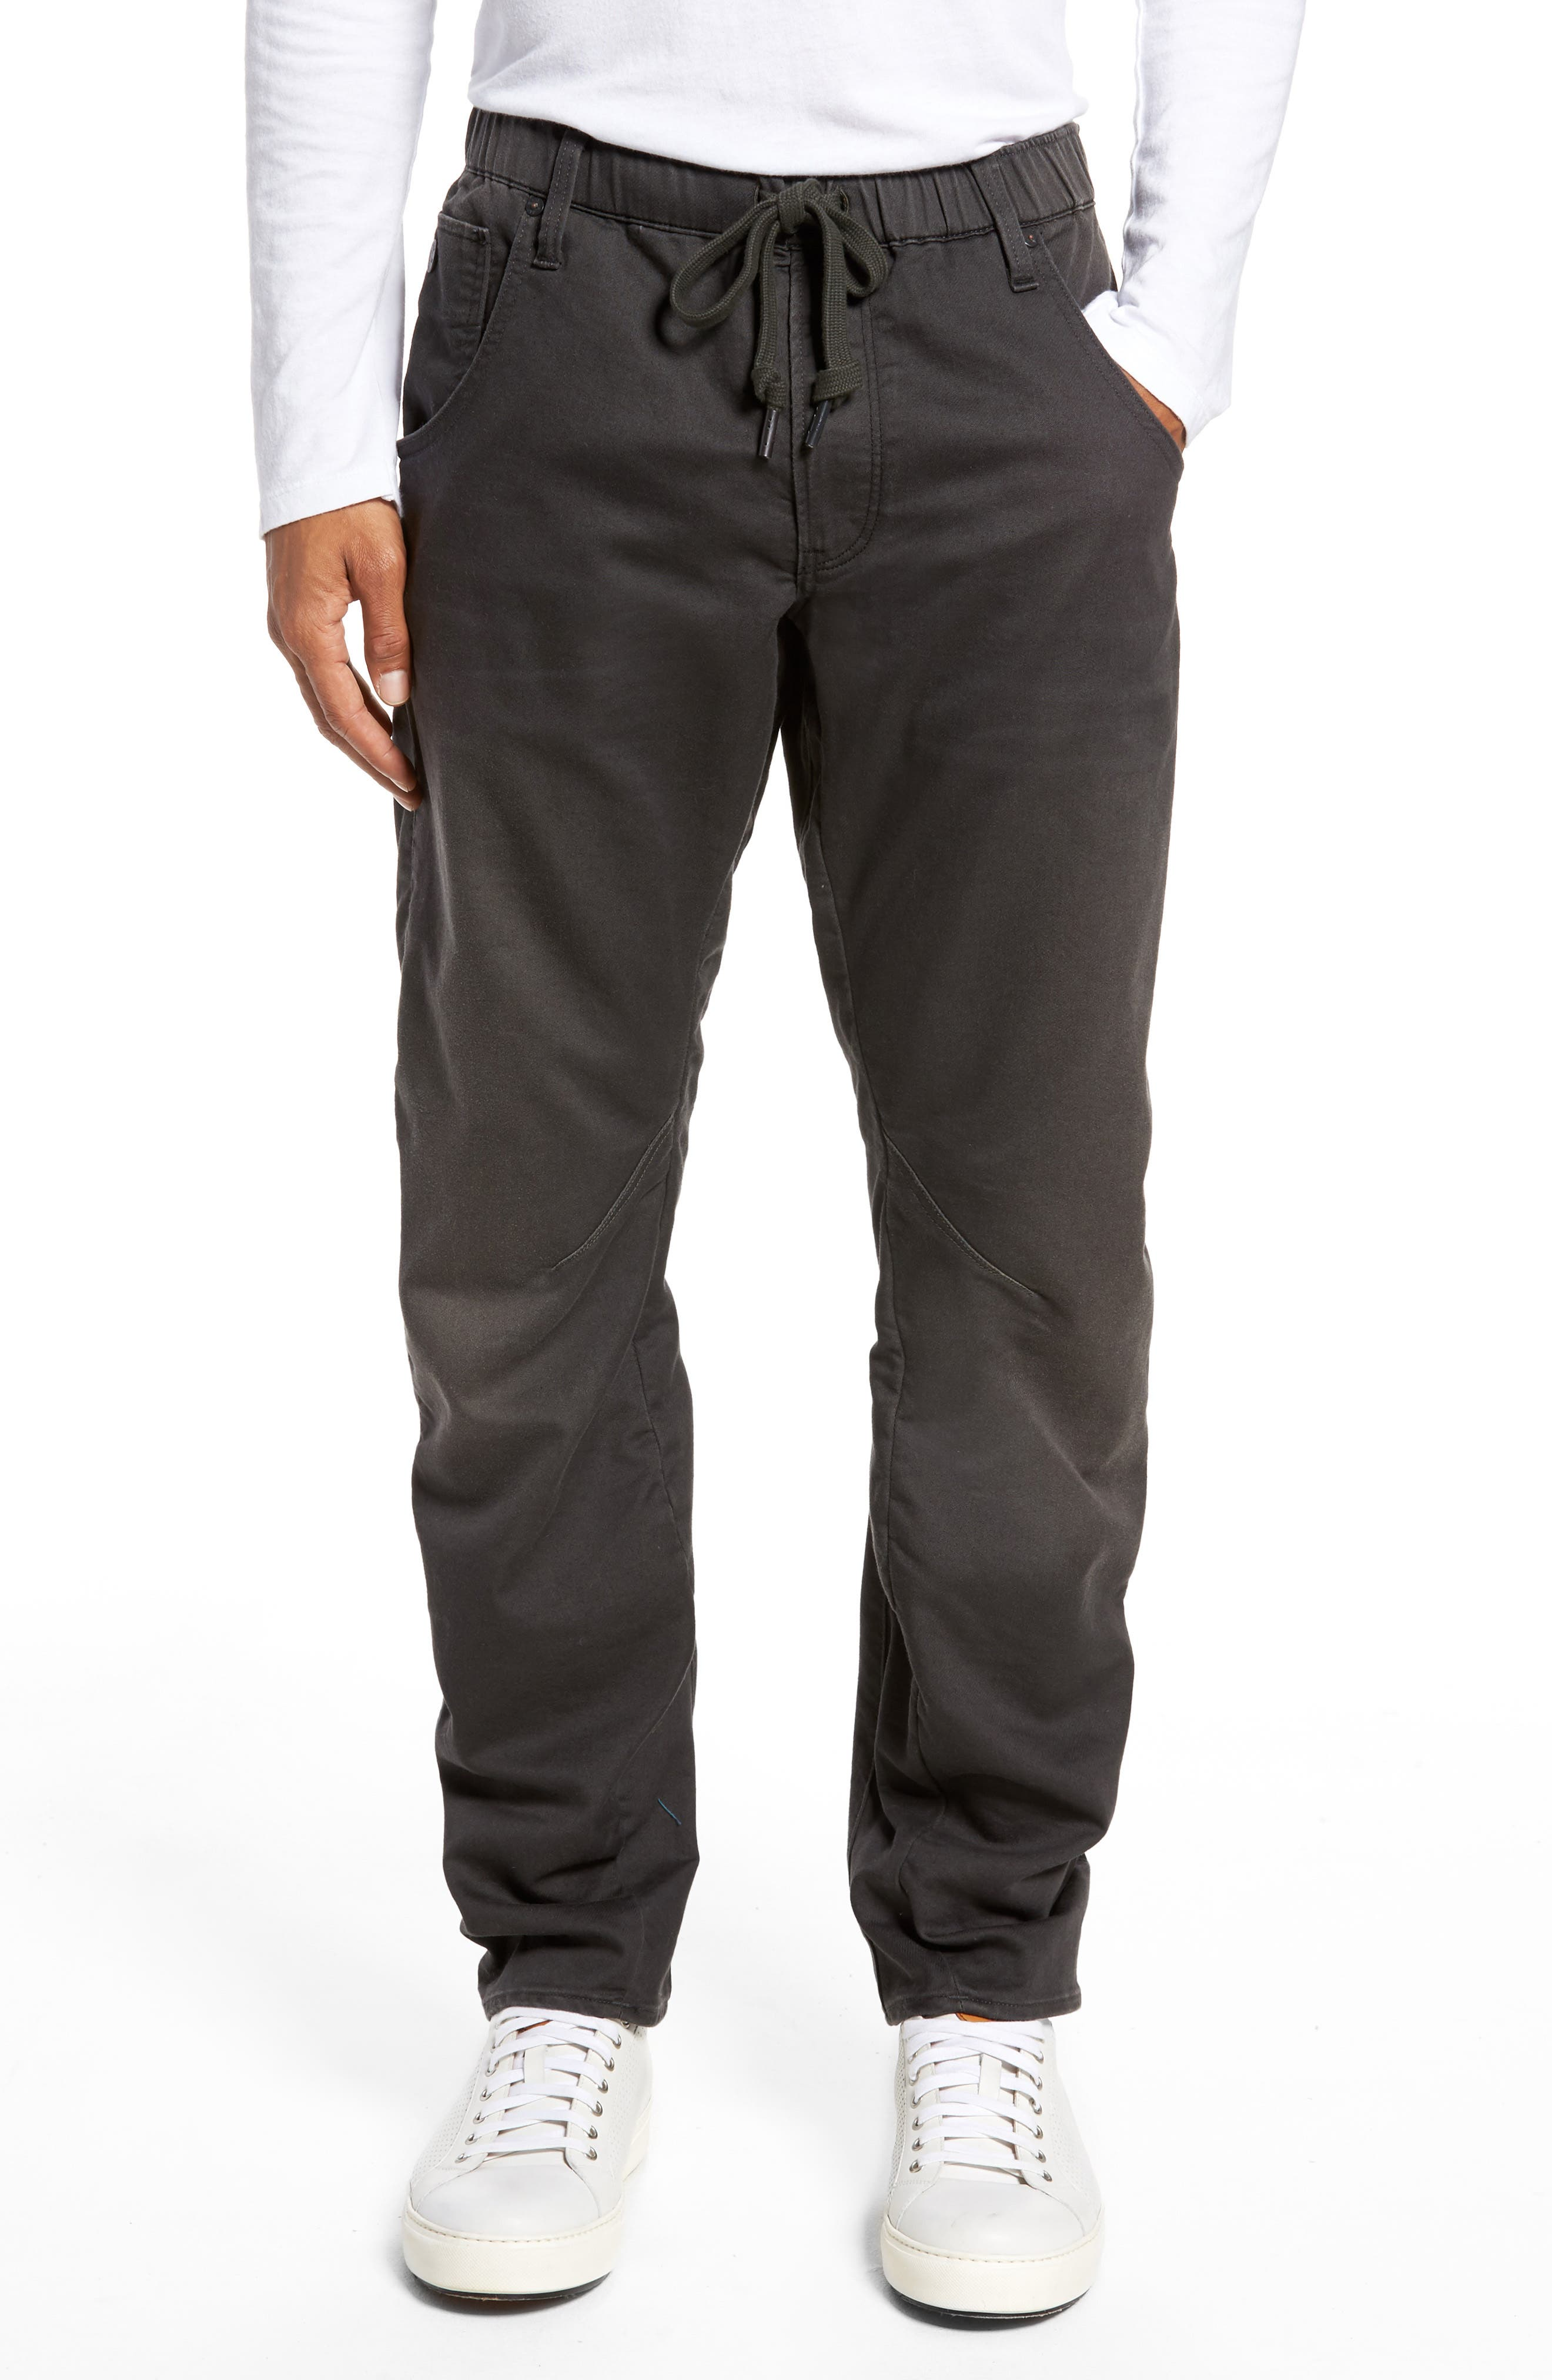 G-Star Raw Arc 3D Sport Tapered Fit Jogger Pants